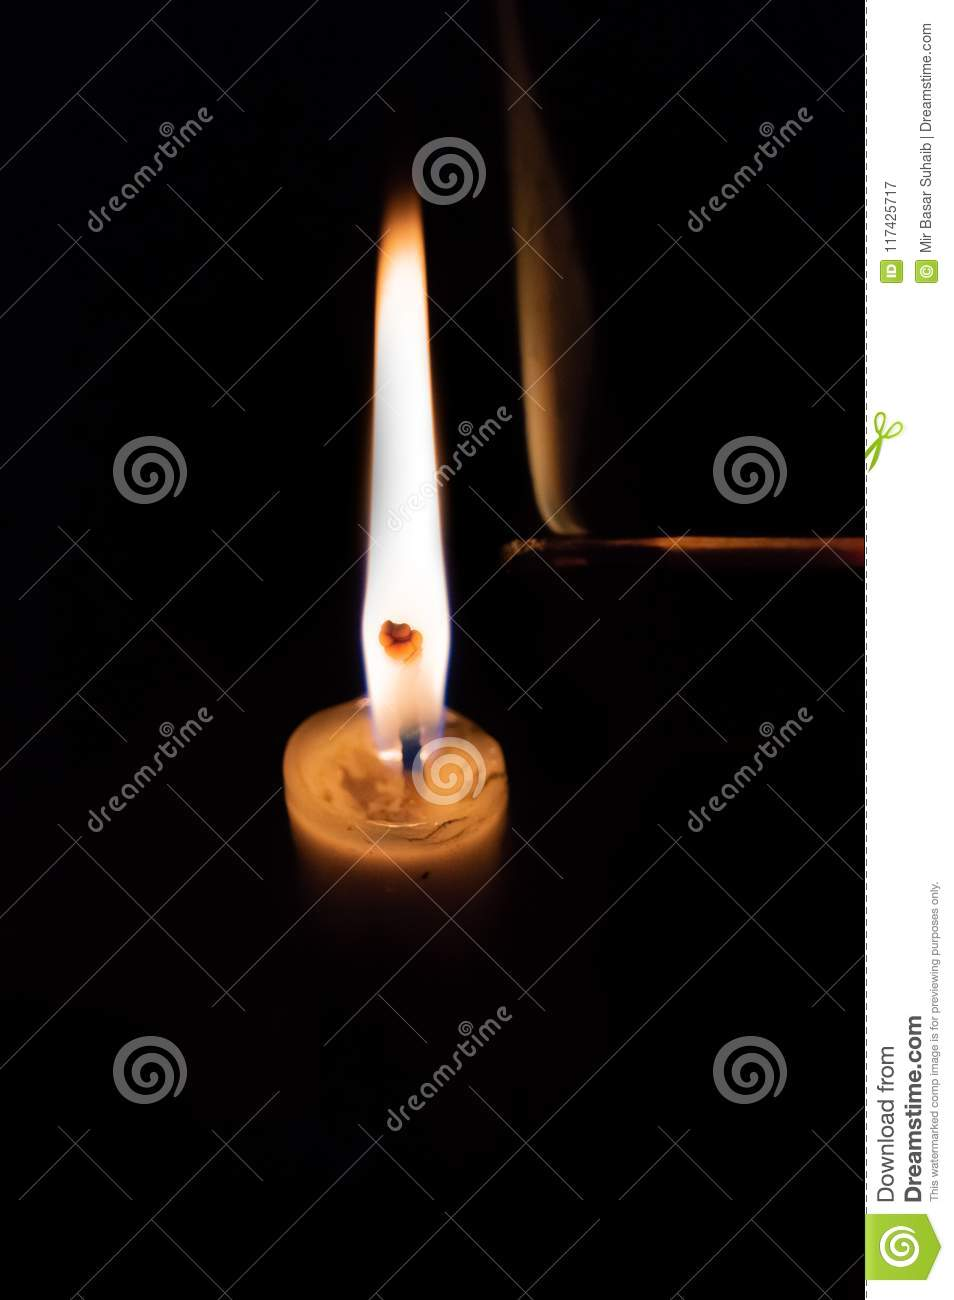 Person lighting a candle with a matchstick. Smoke from an extinguished matchstick